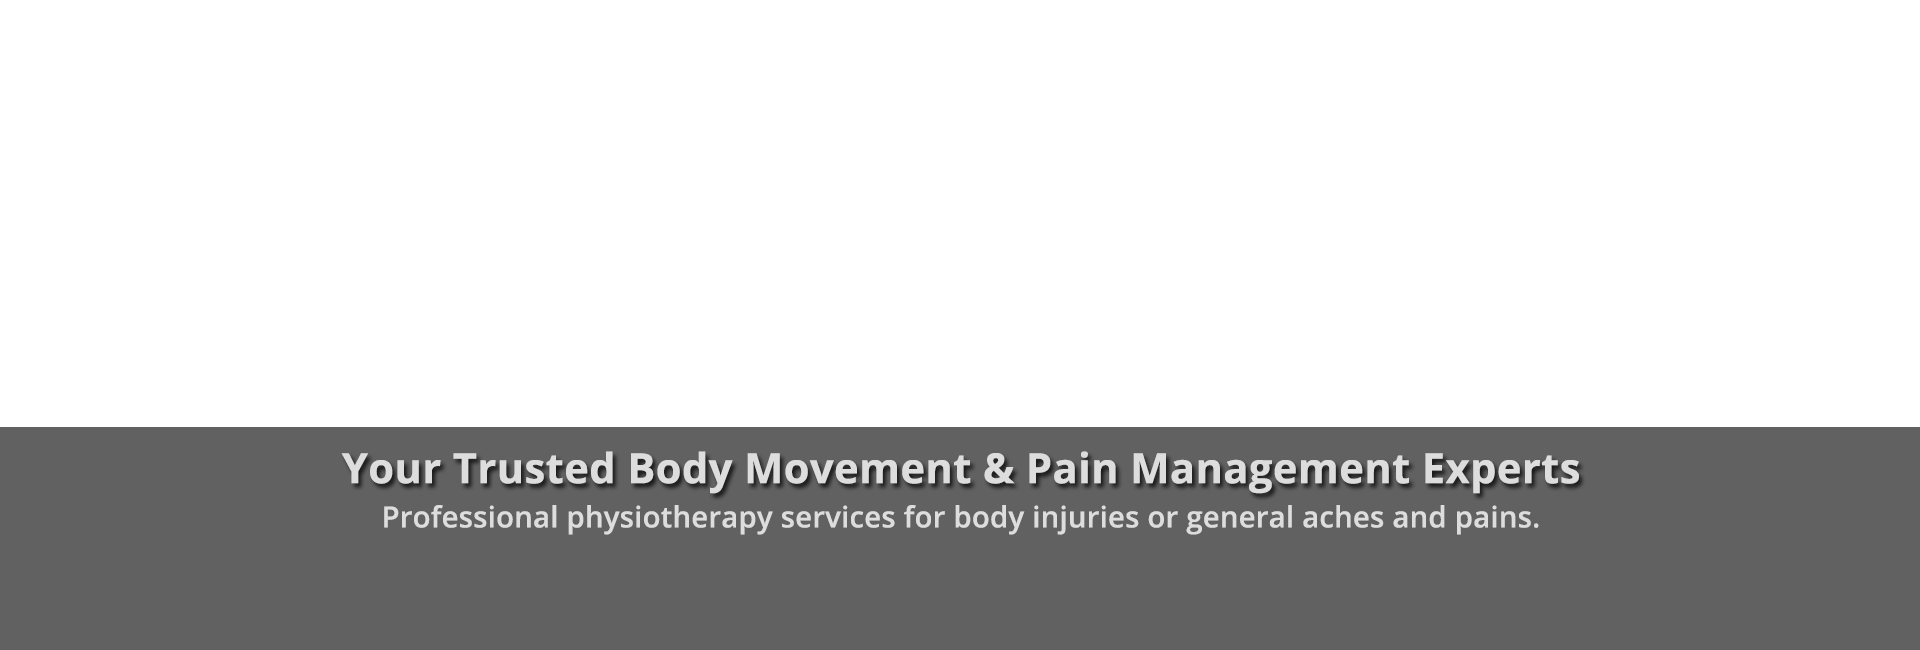 Elevation Physiotherapy & Wellness :: Professional Physiotherapy Services for Body Injuries or General Aches and Pains